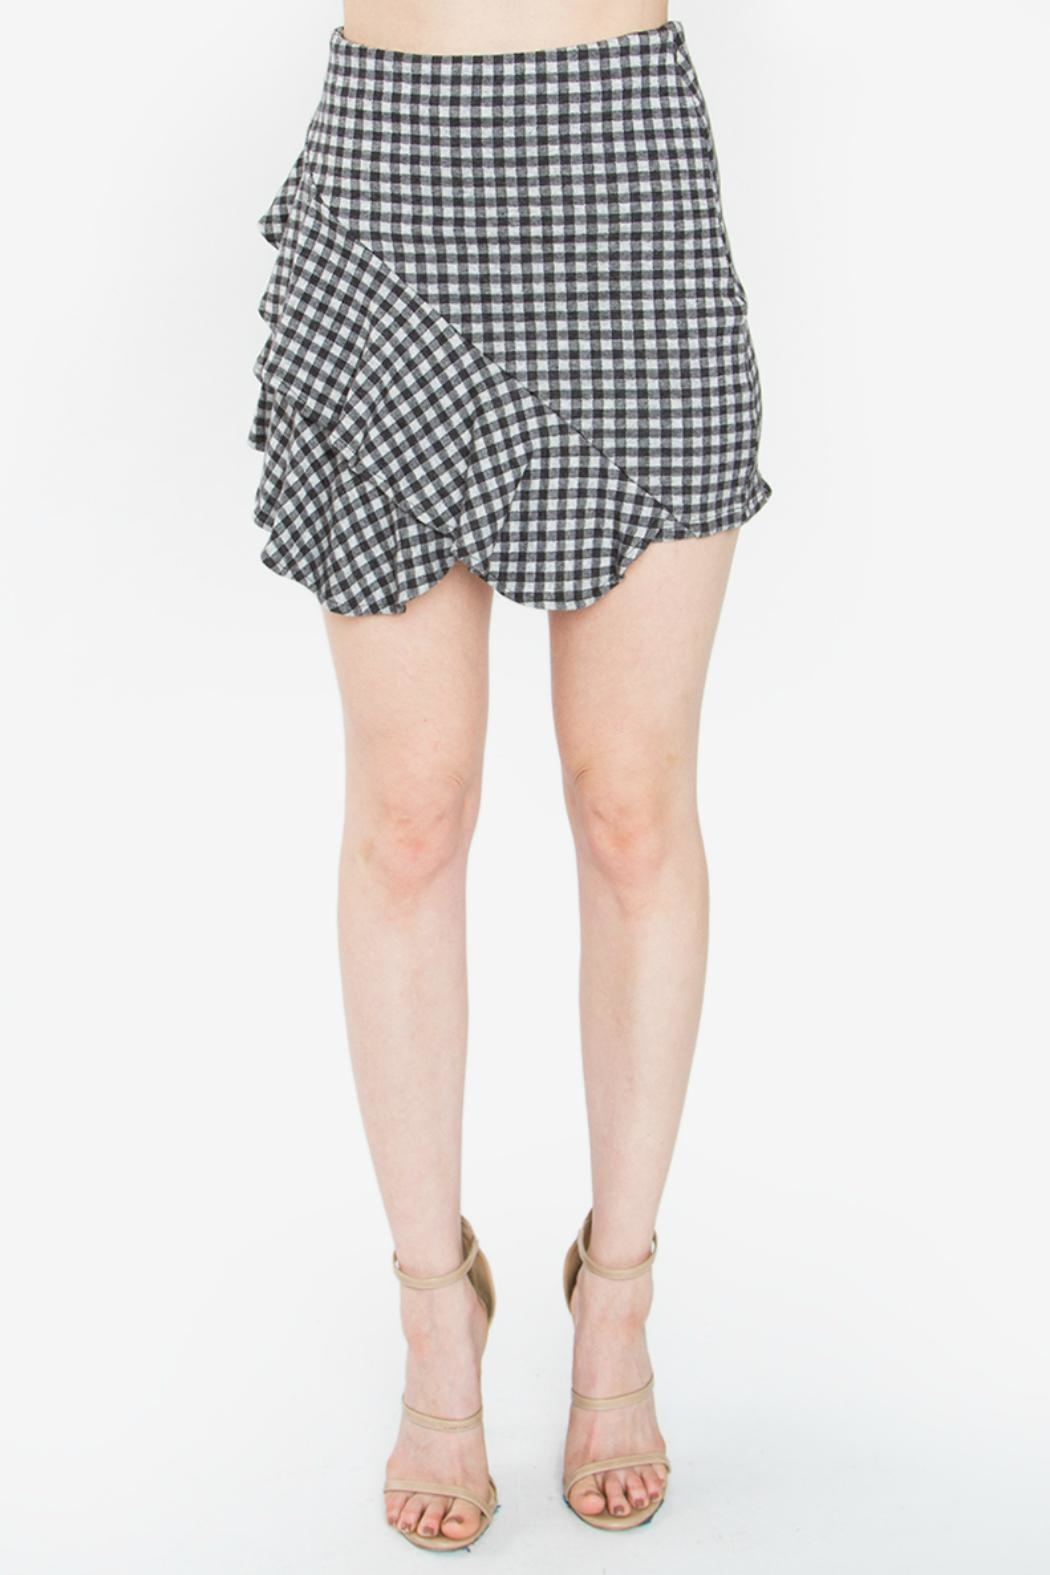 Sugar Lips Shirley Gingham Skirt - Main Image